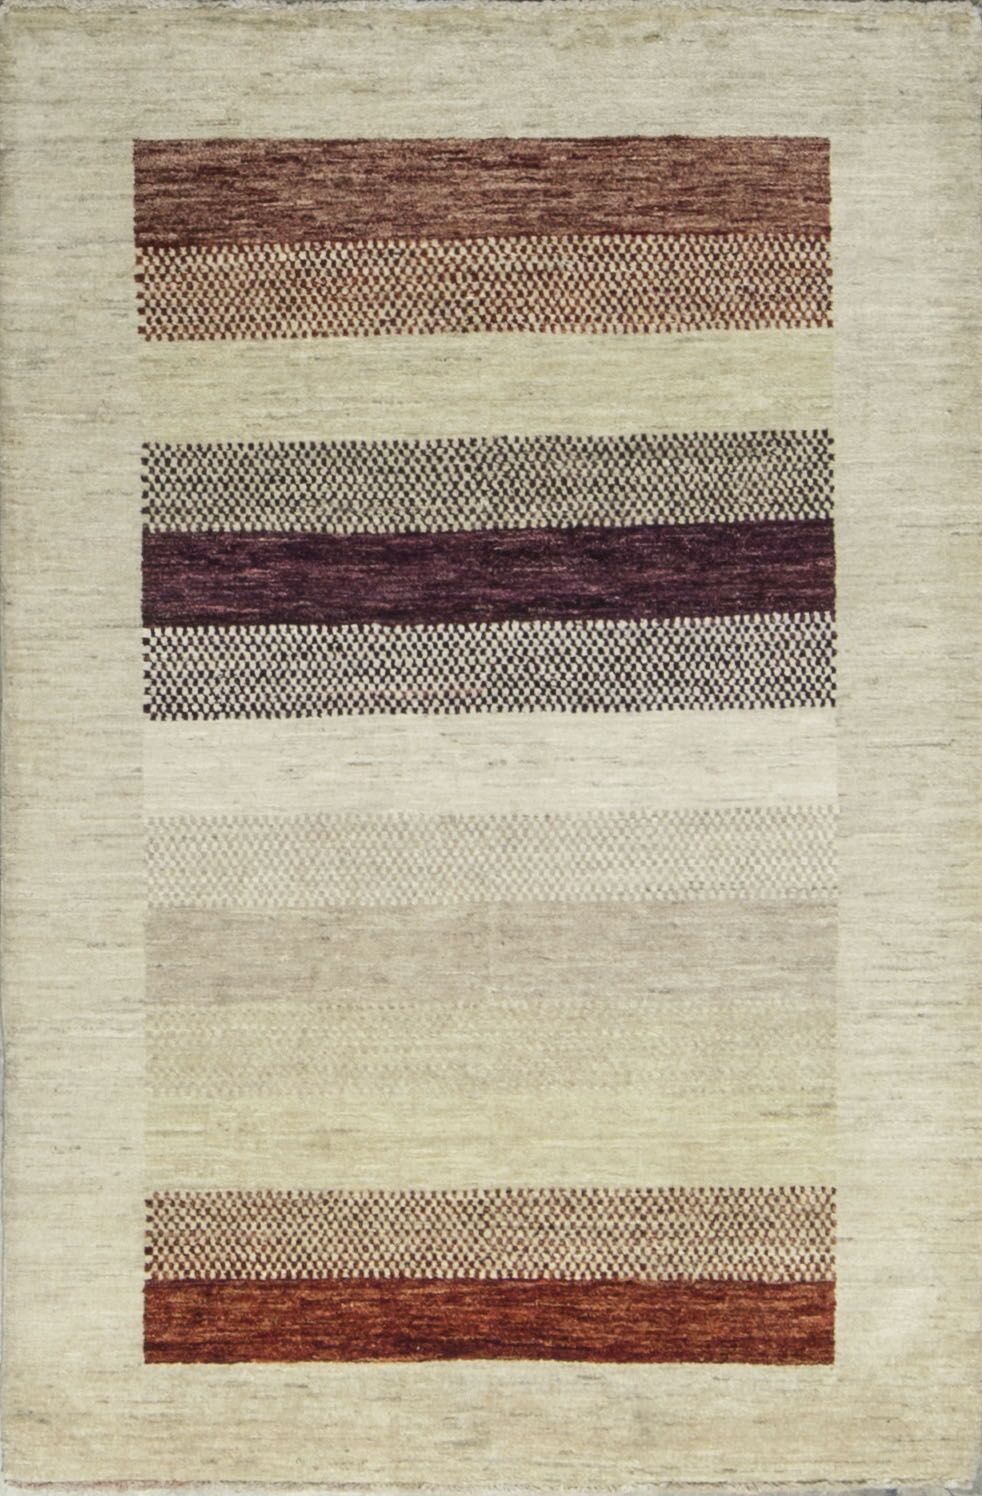 One-of-a-Kind Gabbeh Accent Stripe Hand-Knotted Wool Lavender Area Rug